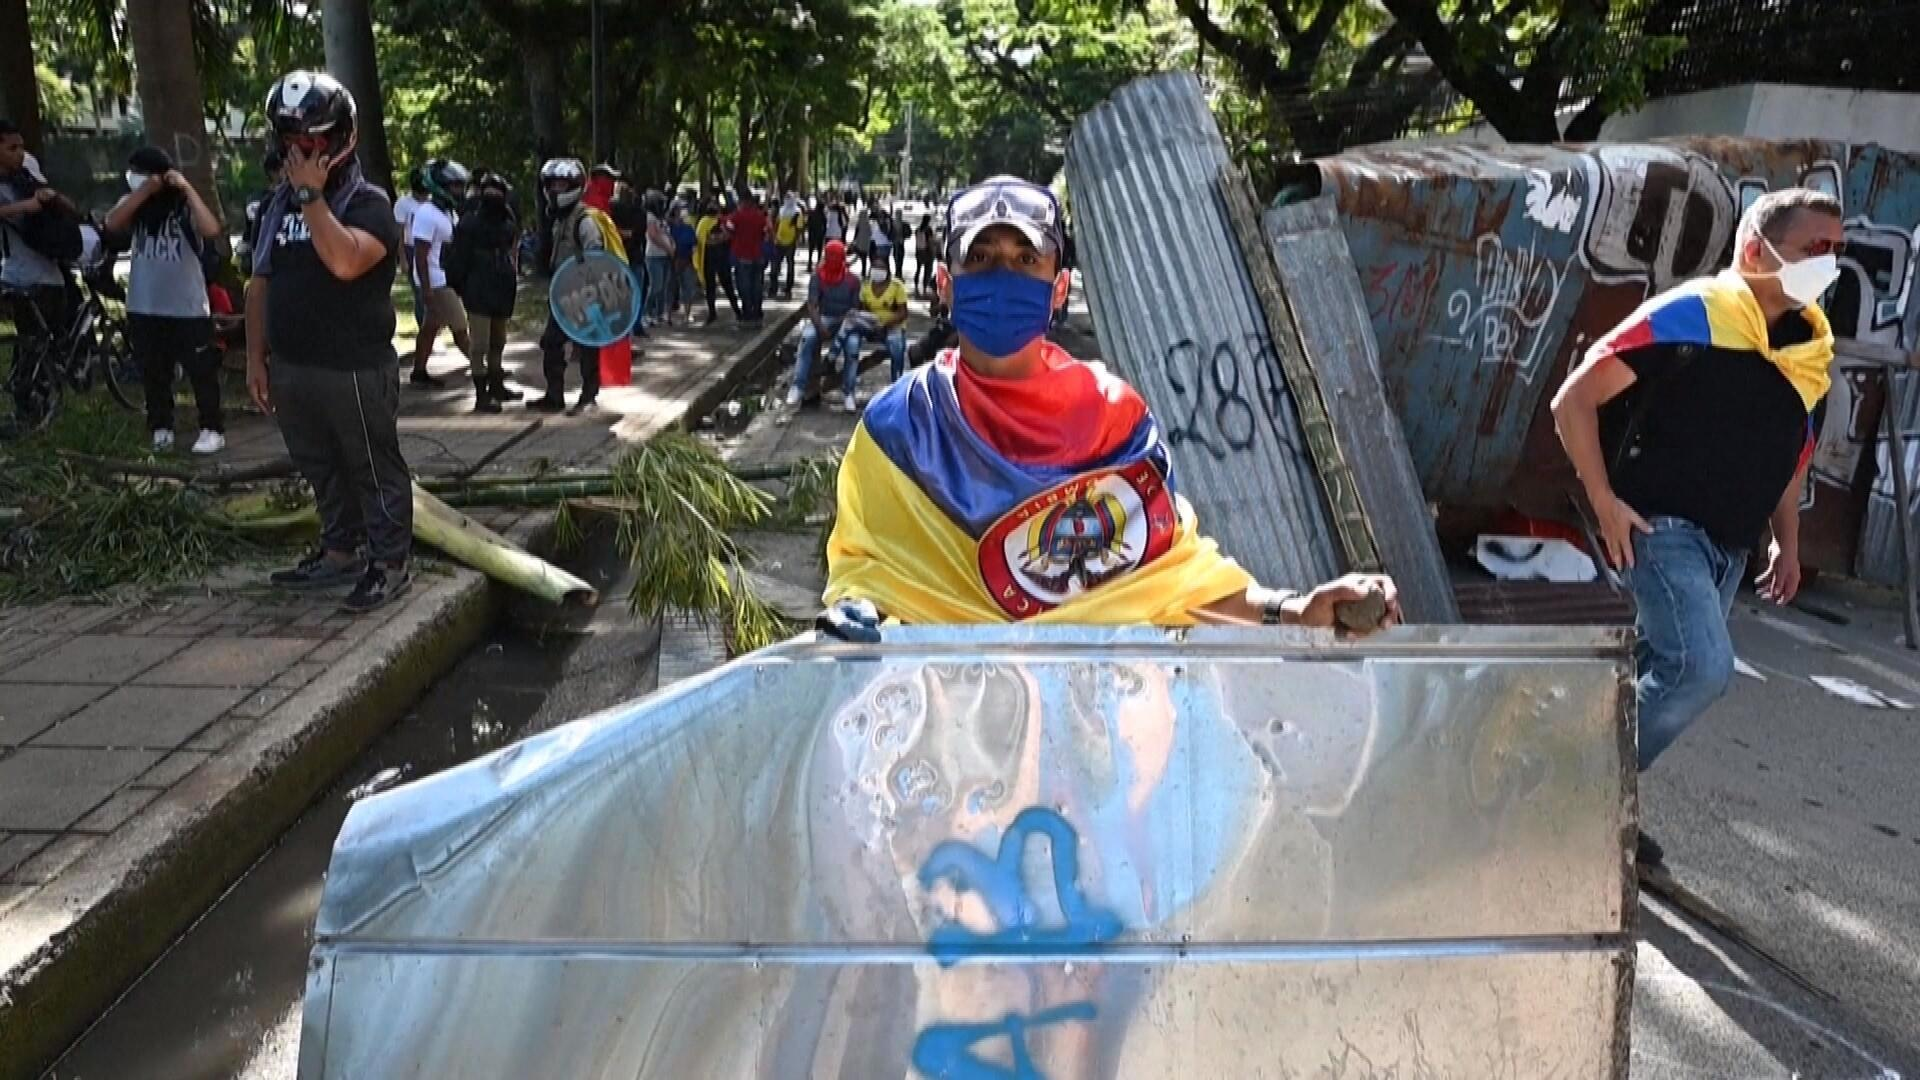 XX NW OOV ECRAN FREEZE COLOMBIE PROTESTS